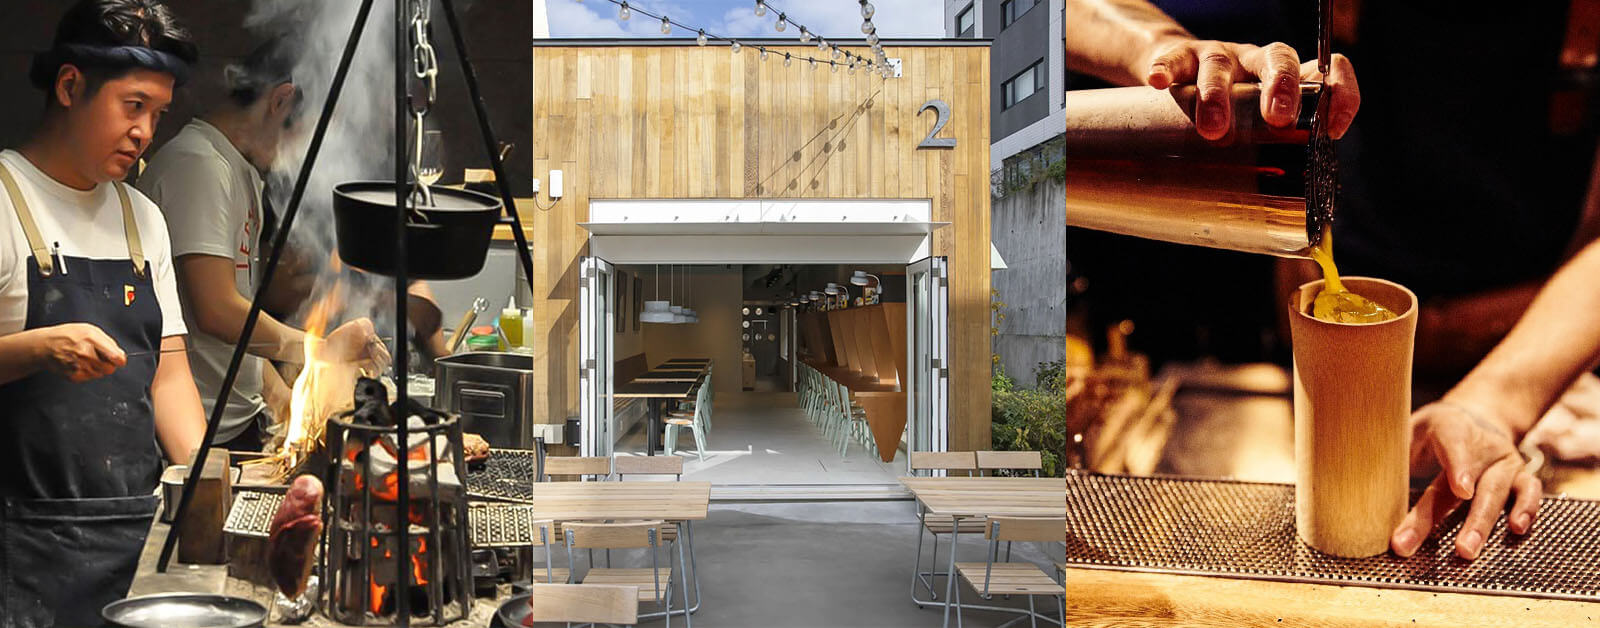 Your Guide to Great Local Spots in Daikanyama